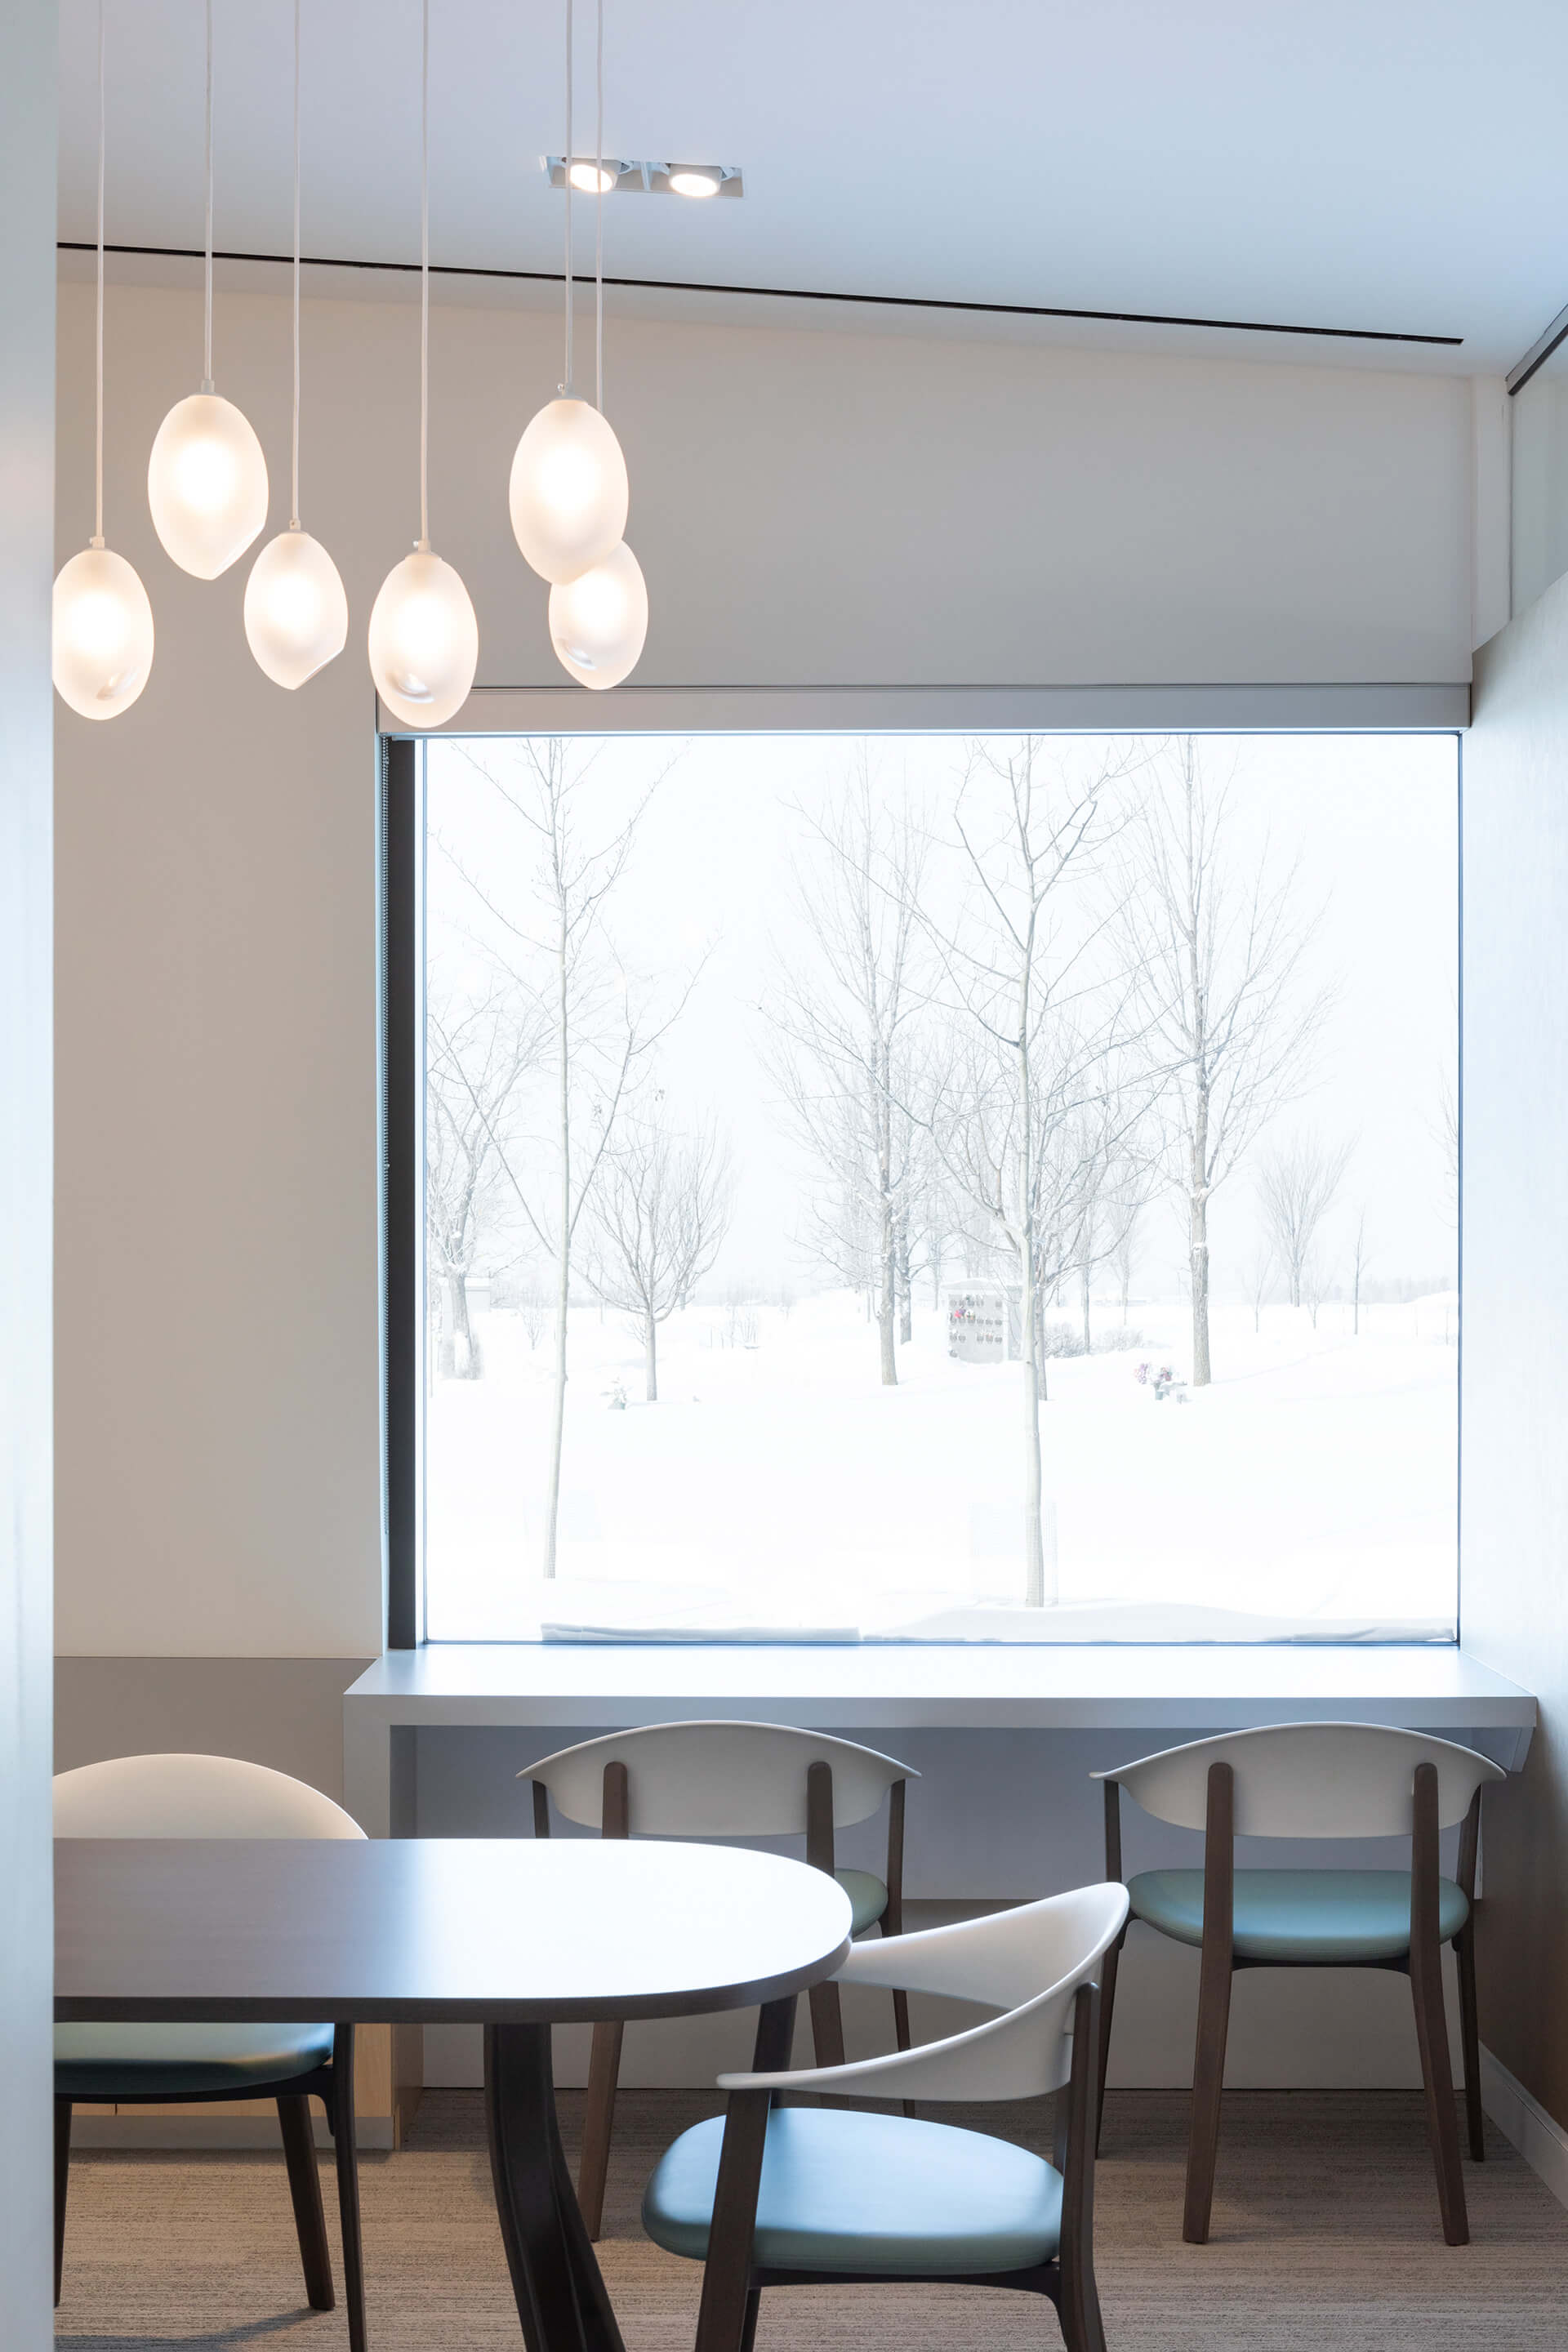 The 'Spirit Light' fixture hangs inside the warm interior spaces | South Haven Centre for Remembrance by Shape Architecture | STIRworld